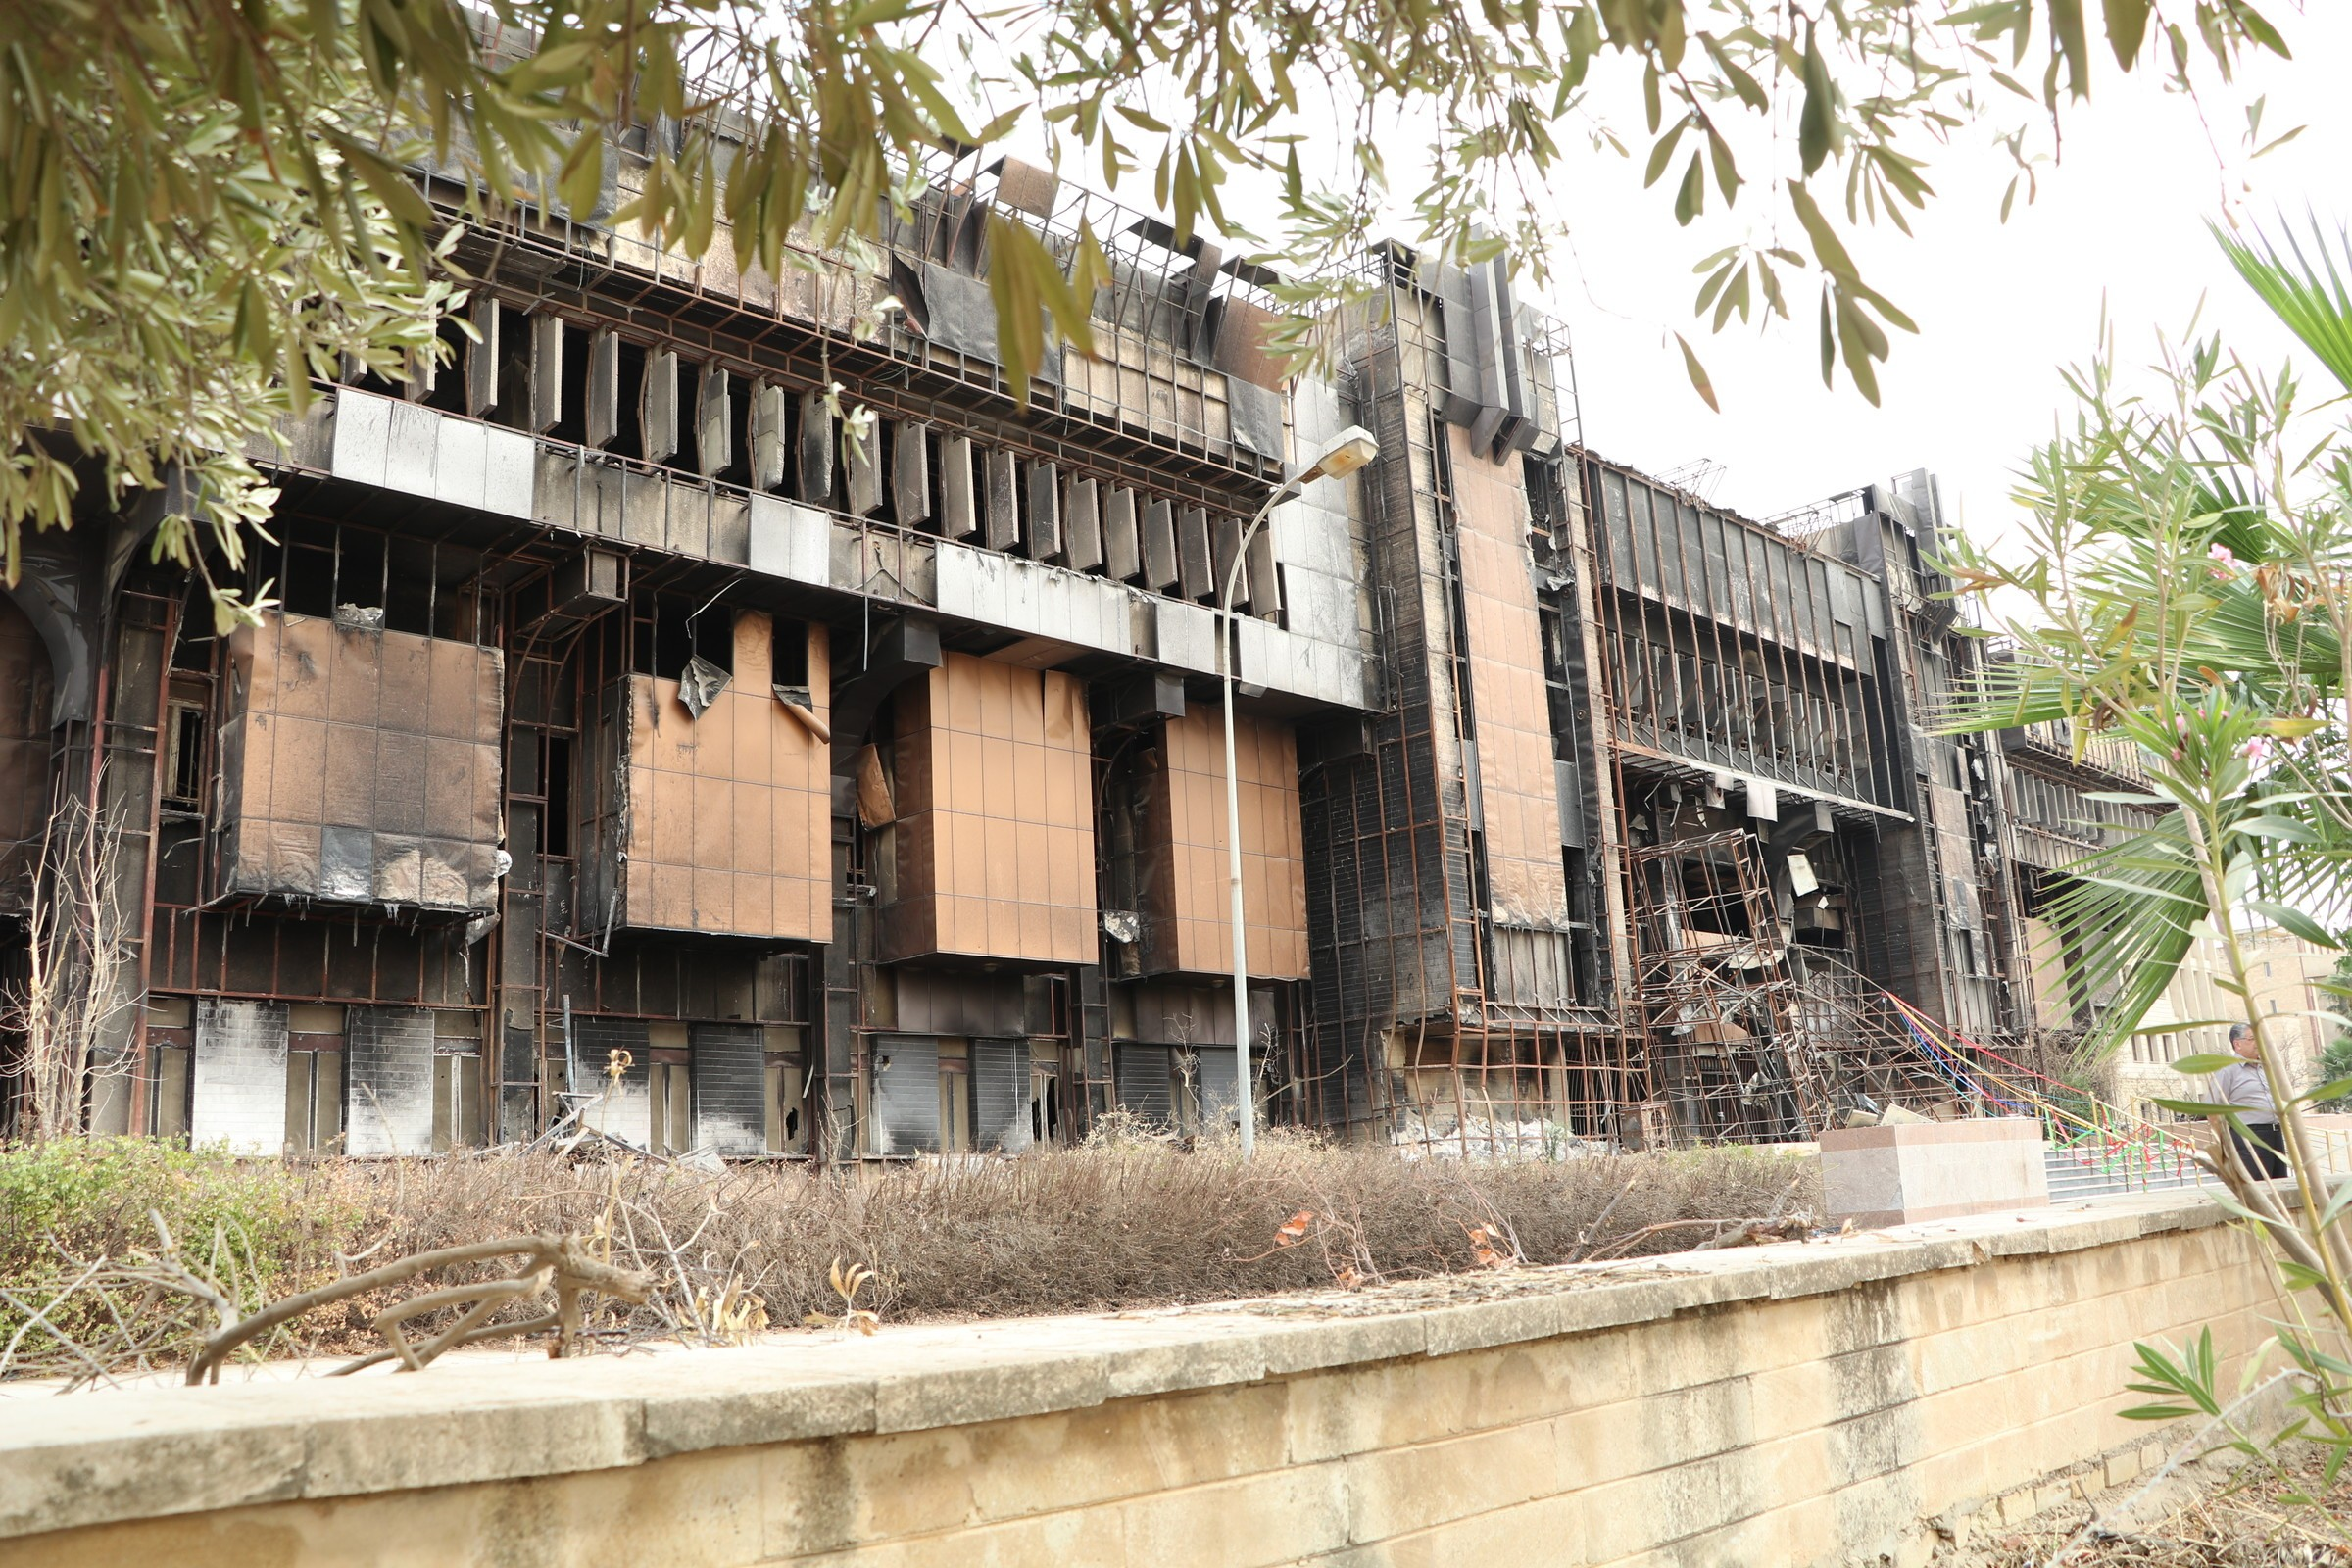 Islamic state destroyed the main library in the city of Mosul 02/23/2015 94